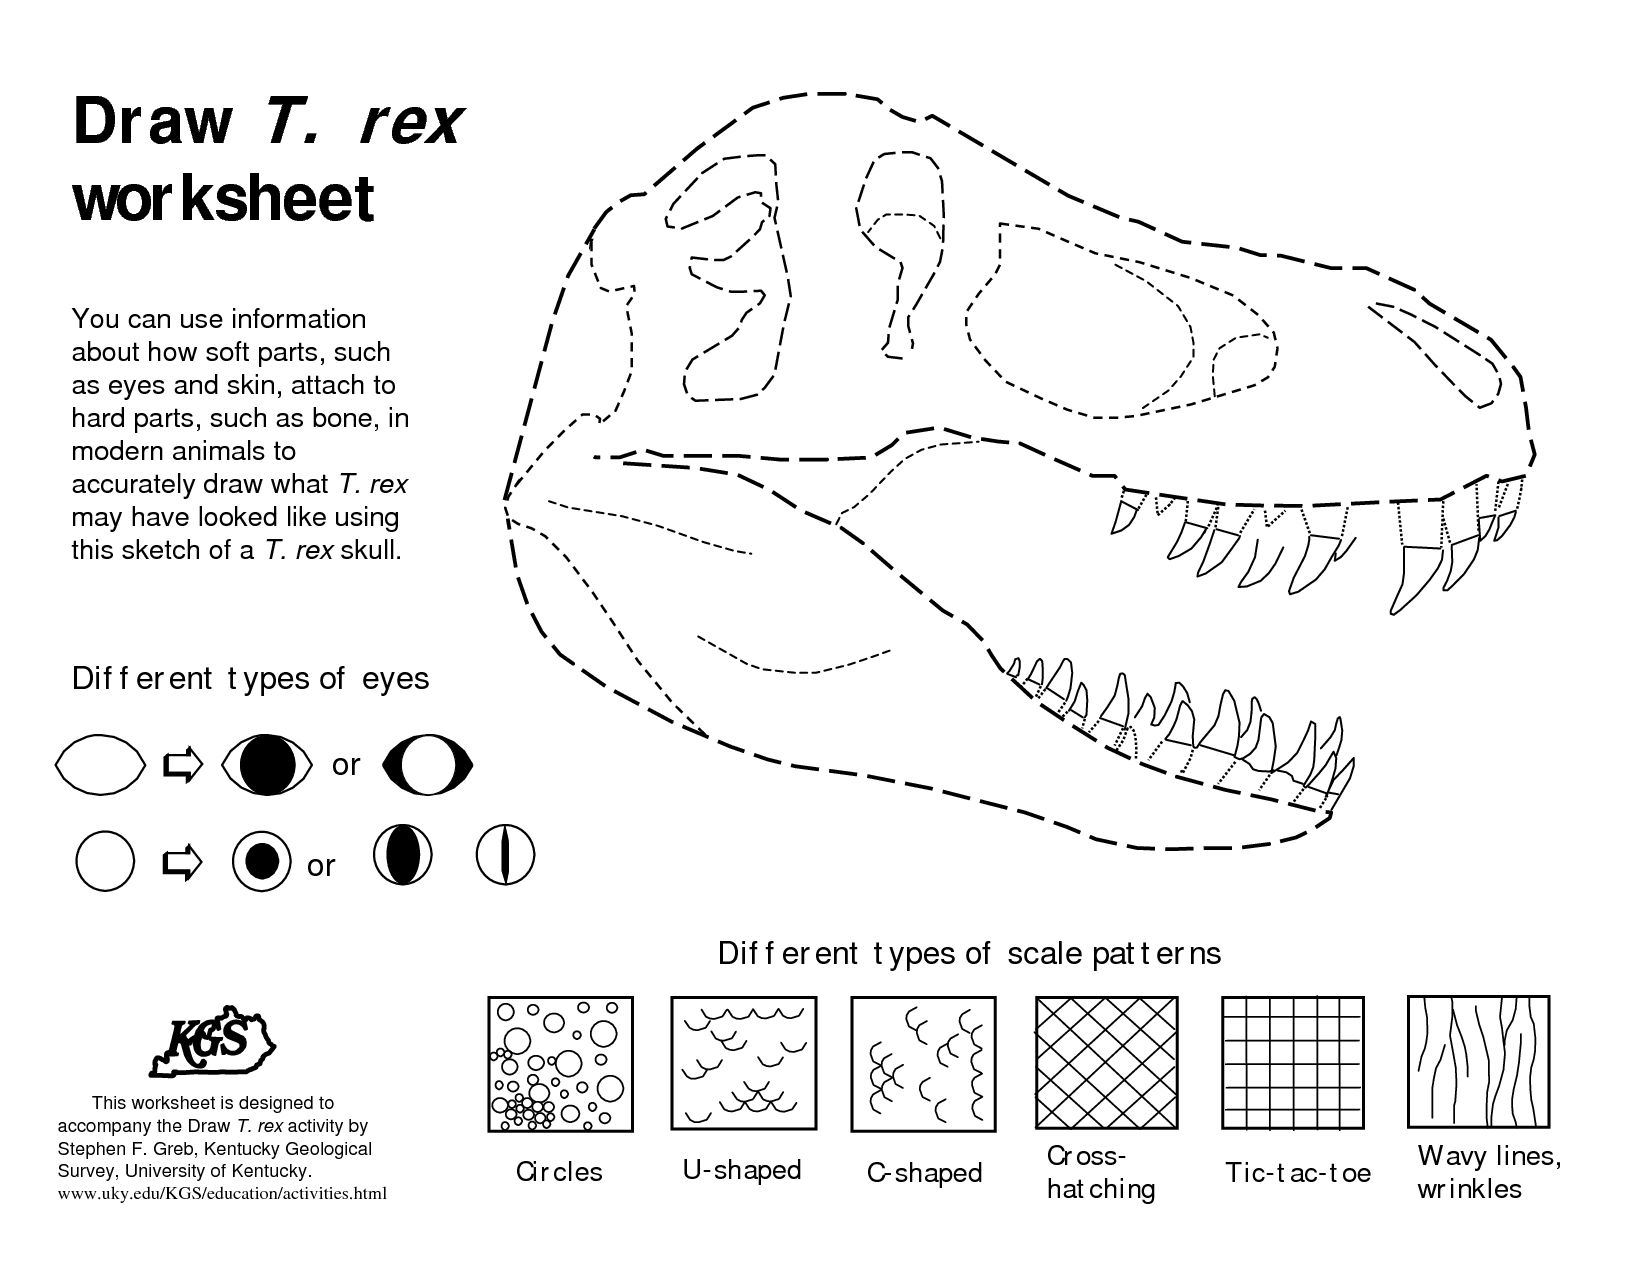 dinosaurs bones draw draw t rex worksheet pdf preschool worksheets drawings math. Black Bedroom Furniture Sets. Home Design Ideas